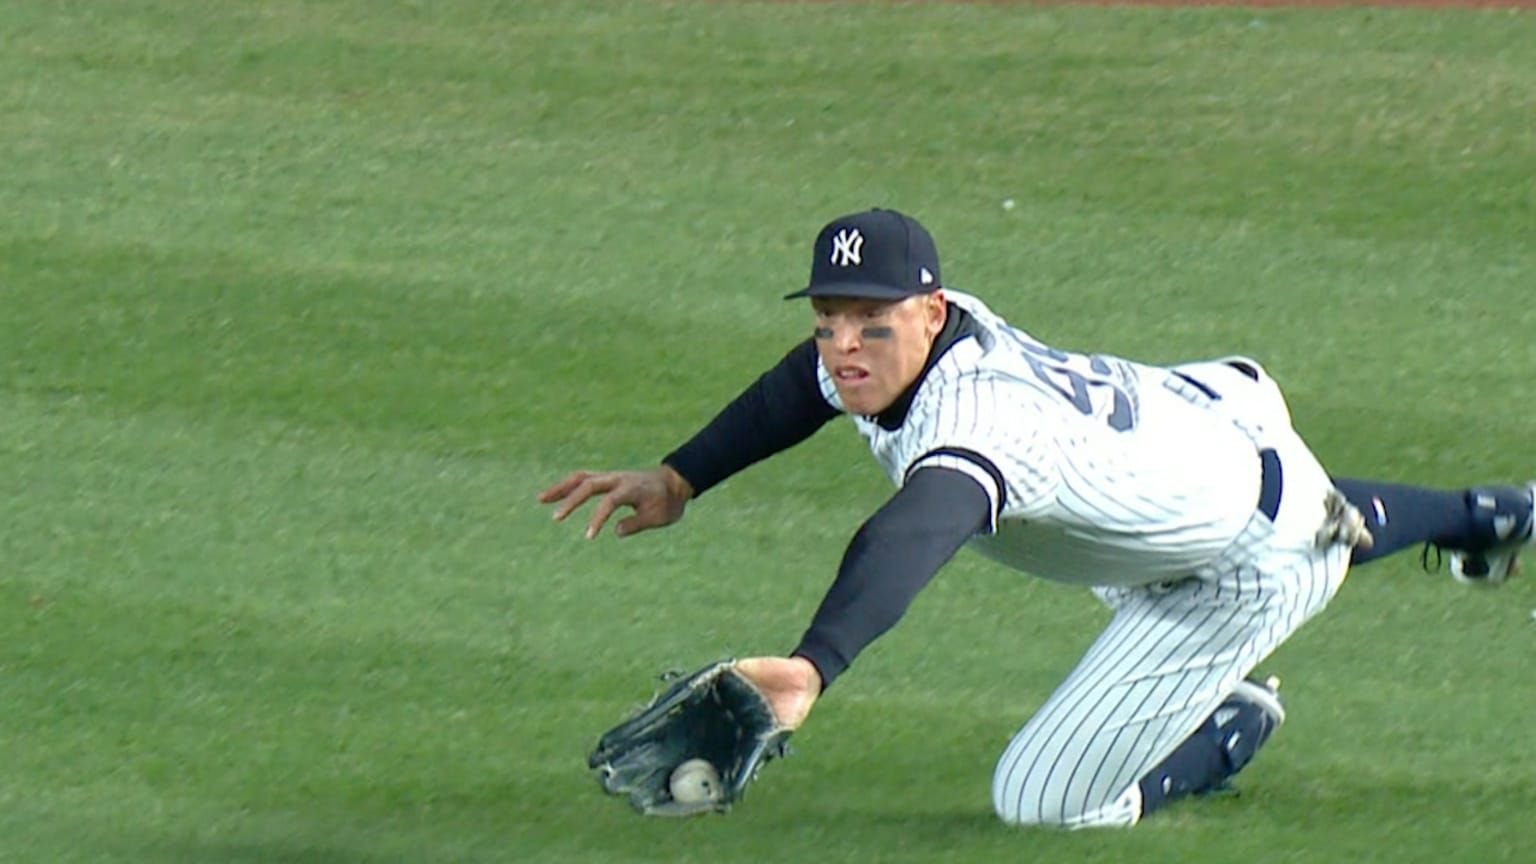 Niko Goodrum Sends A Liner To Right Field But Aaron Judge Dives To Rob Him With A Terrific Catch In The 8th Judge Yankees Baseball New York Yankees